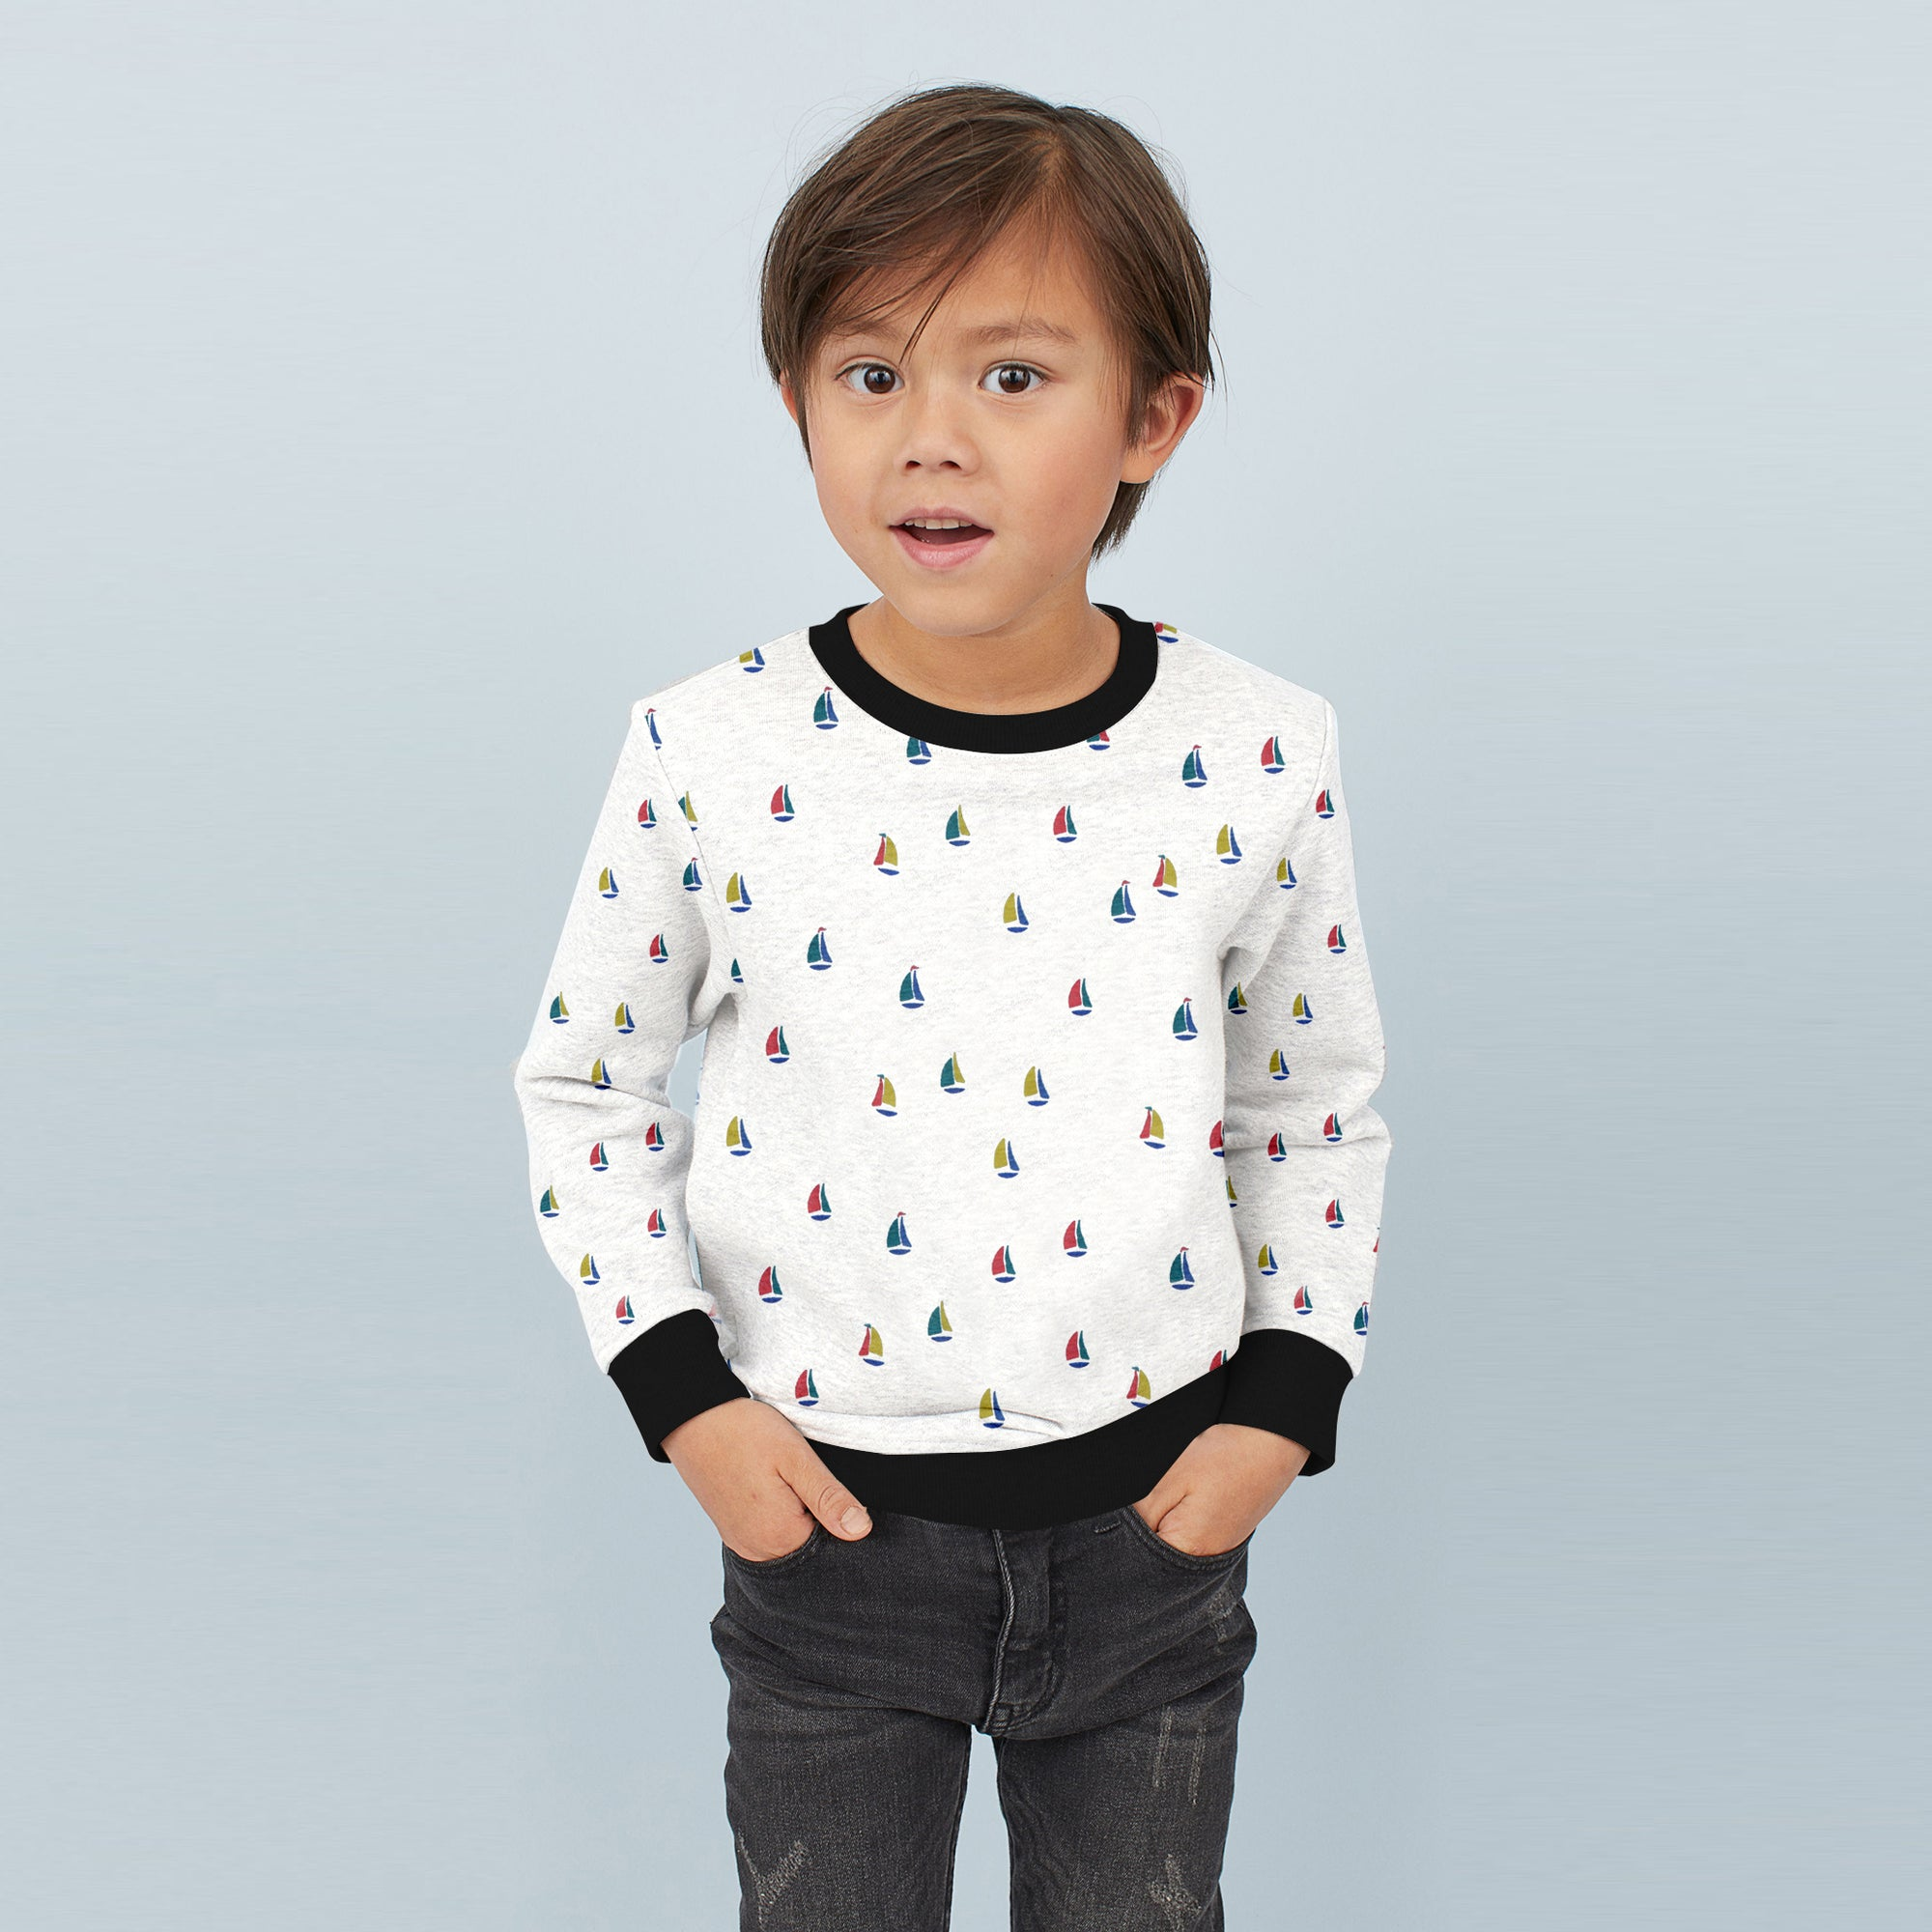 Tommy Hilfiger Crew Neck Single Jersey Sweatshirt For Kids-Off White Melange with Allover Print-BE7400